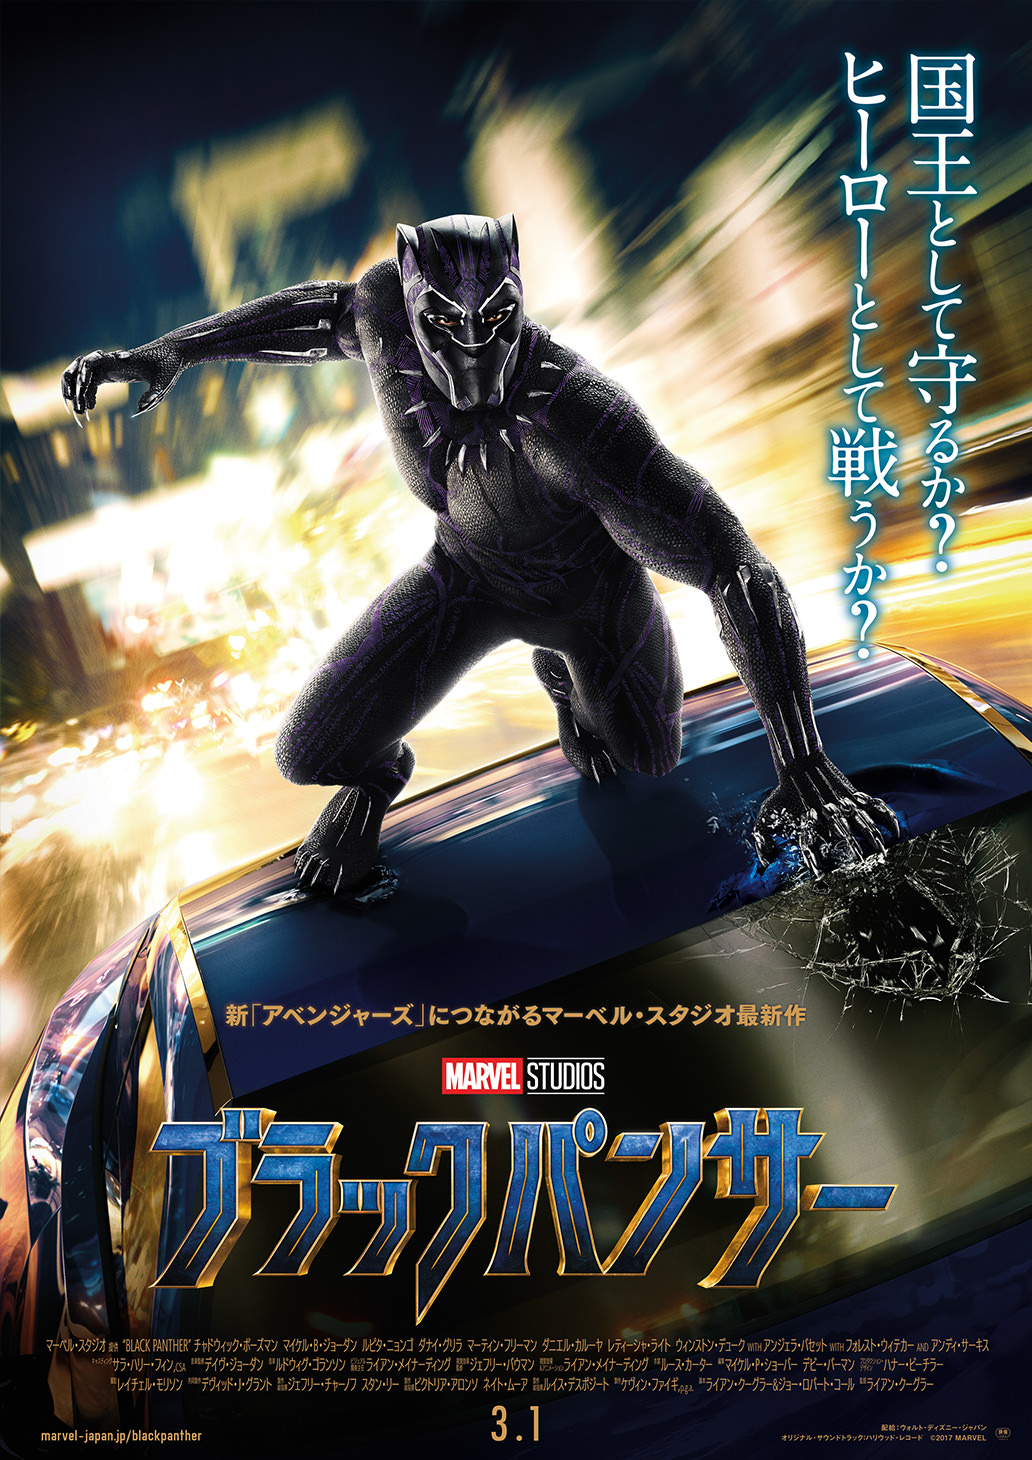 http://marvel.disney.co.jp/content/dam/marvel/movie/blackpanther/story/story_blackpanther_02.jpg